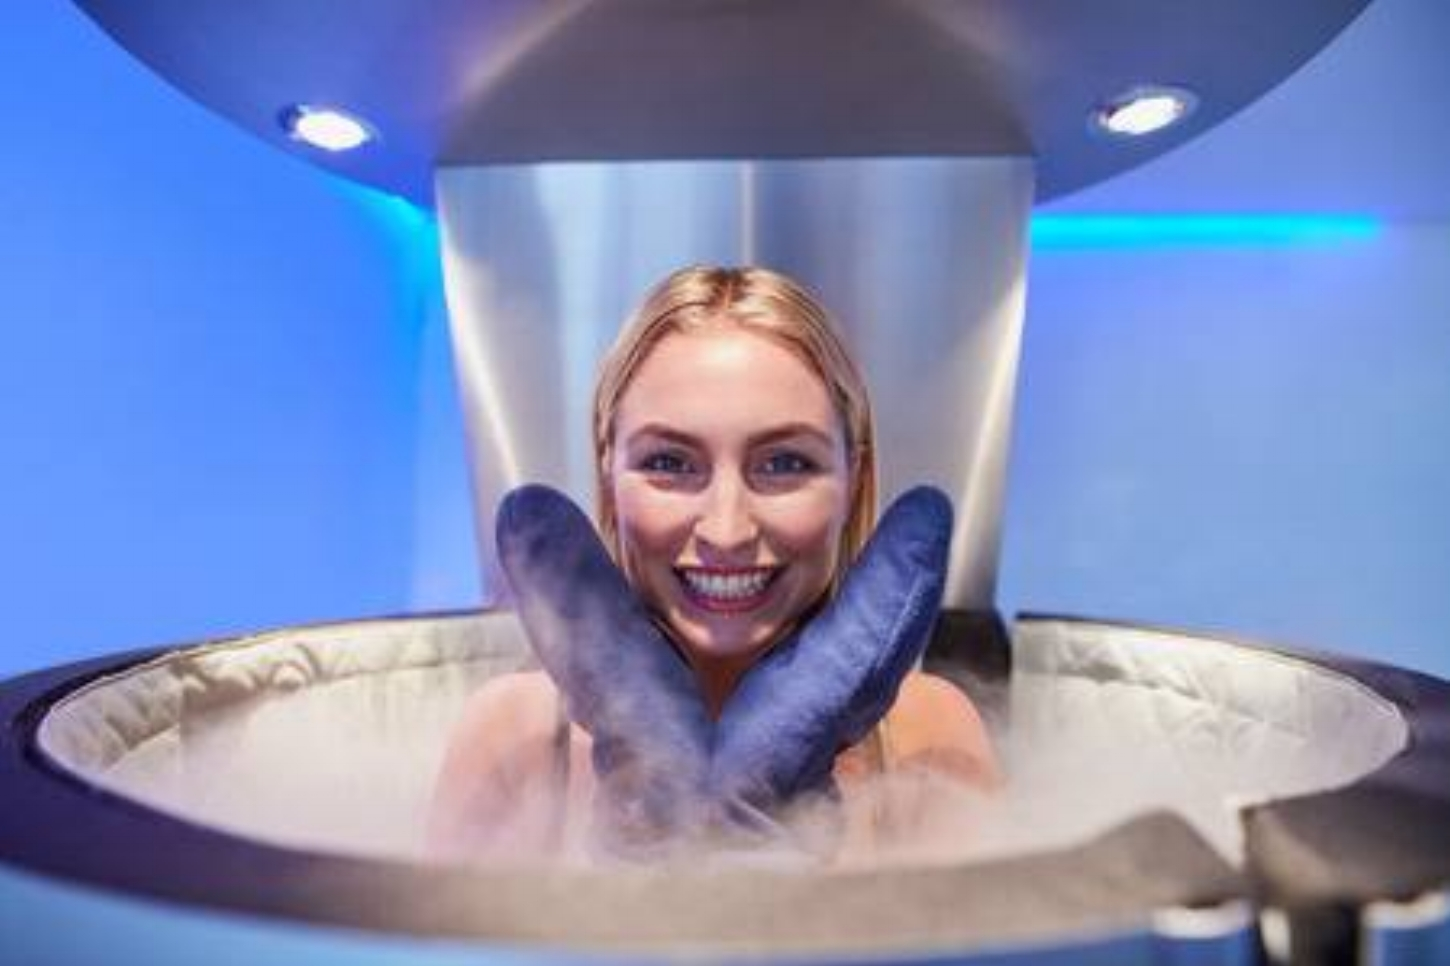 56096823-portrait-of-a-cute-young-woman-in-cryosauna-booth-for-full-body-cryotherapy-caucasian-female-in-free[1].jpg